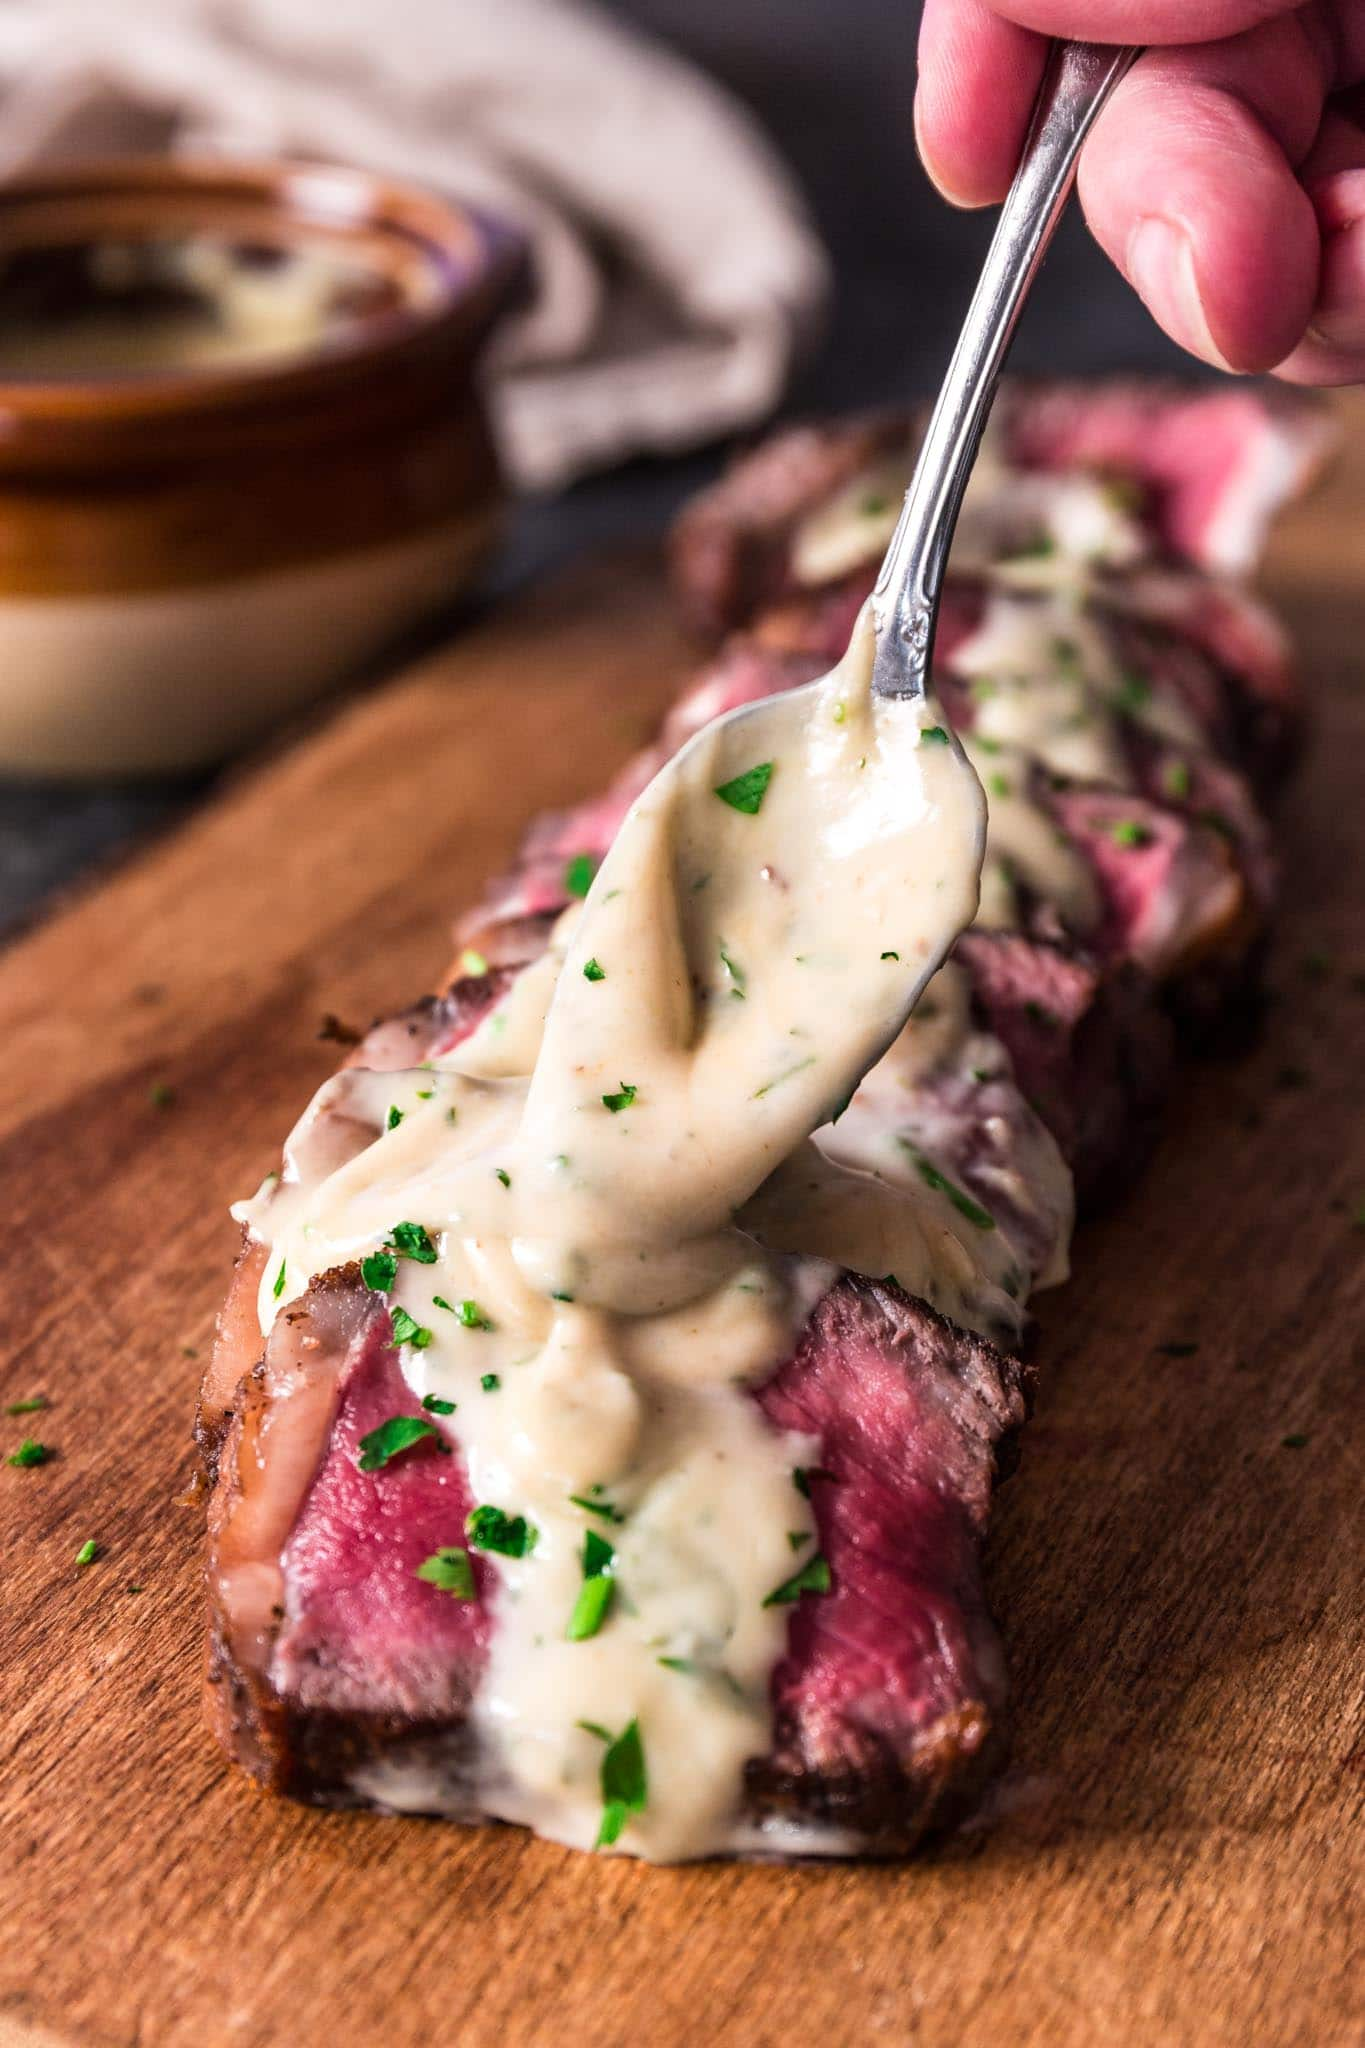 Pan Seared New York Strip Steak with Gorgonzola Sauce | www.oliviascuisine.com | No need to go to a steakhouse to enjoy a juicy New York Strip Steak, cooked to perfection. Follow my tips and you can make a superb steak dinner right at home, on your stove, in less than 30 minutes! The buttery Gorgonzola Cream Sauce is optional, but you'd be crazy to skip it. (Recipe and food photography by @oliviascuisine.)